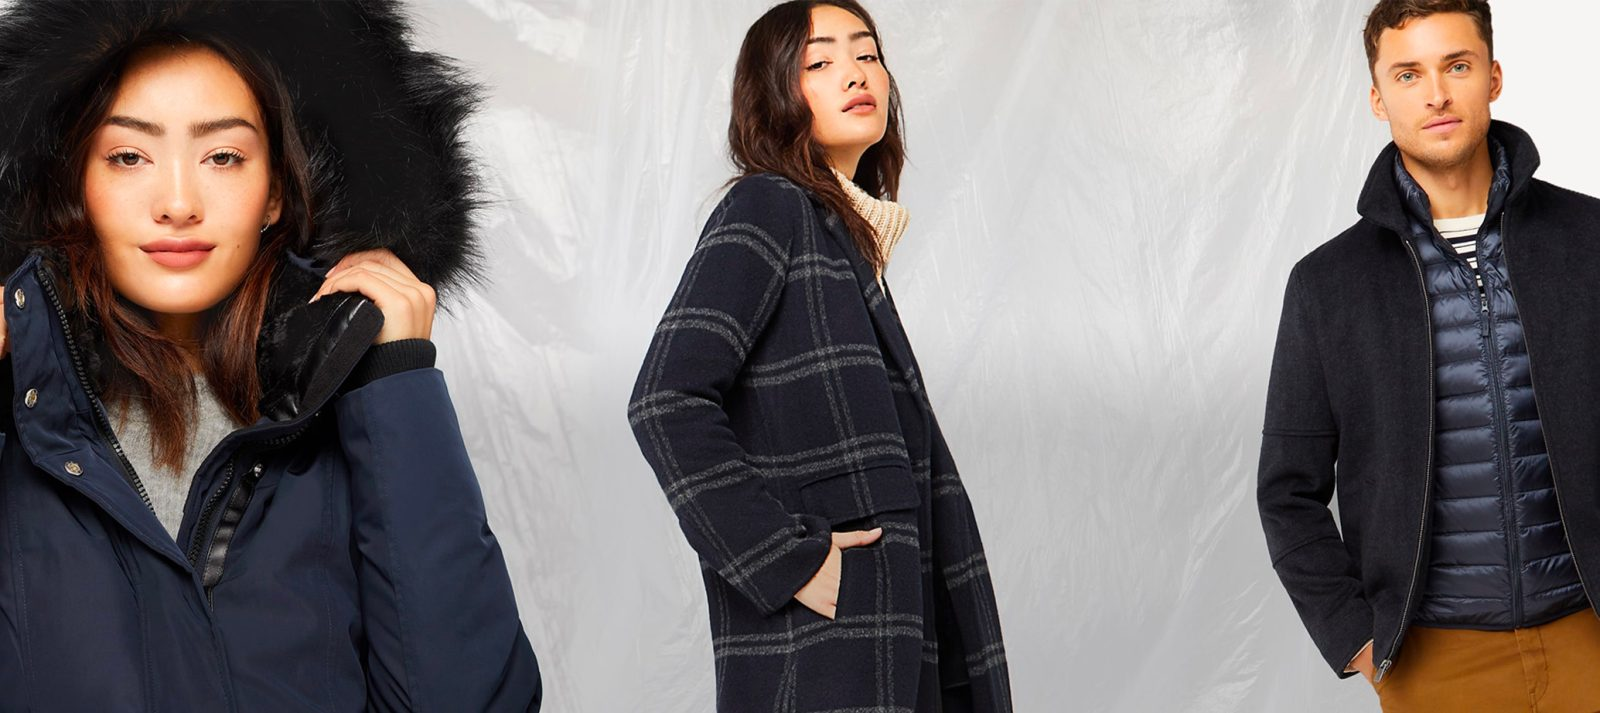 Find outerwear from Cole Haan, UGG and more up to 65% off at Nordstrom Rack